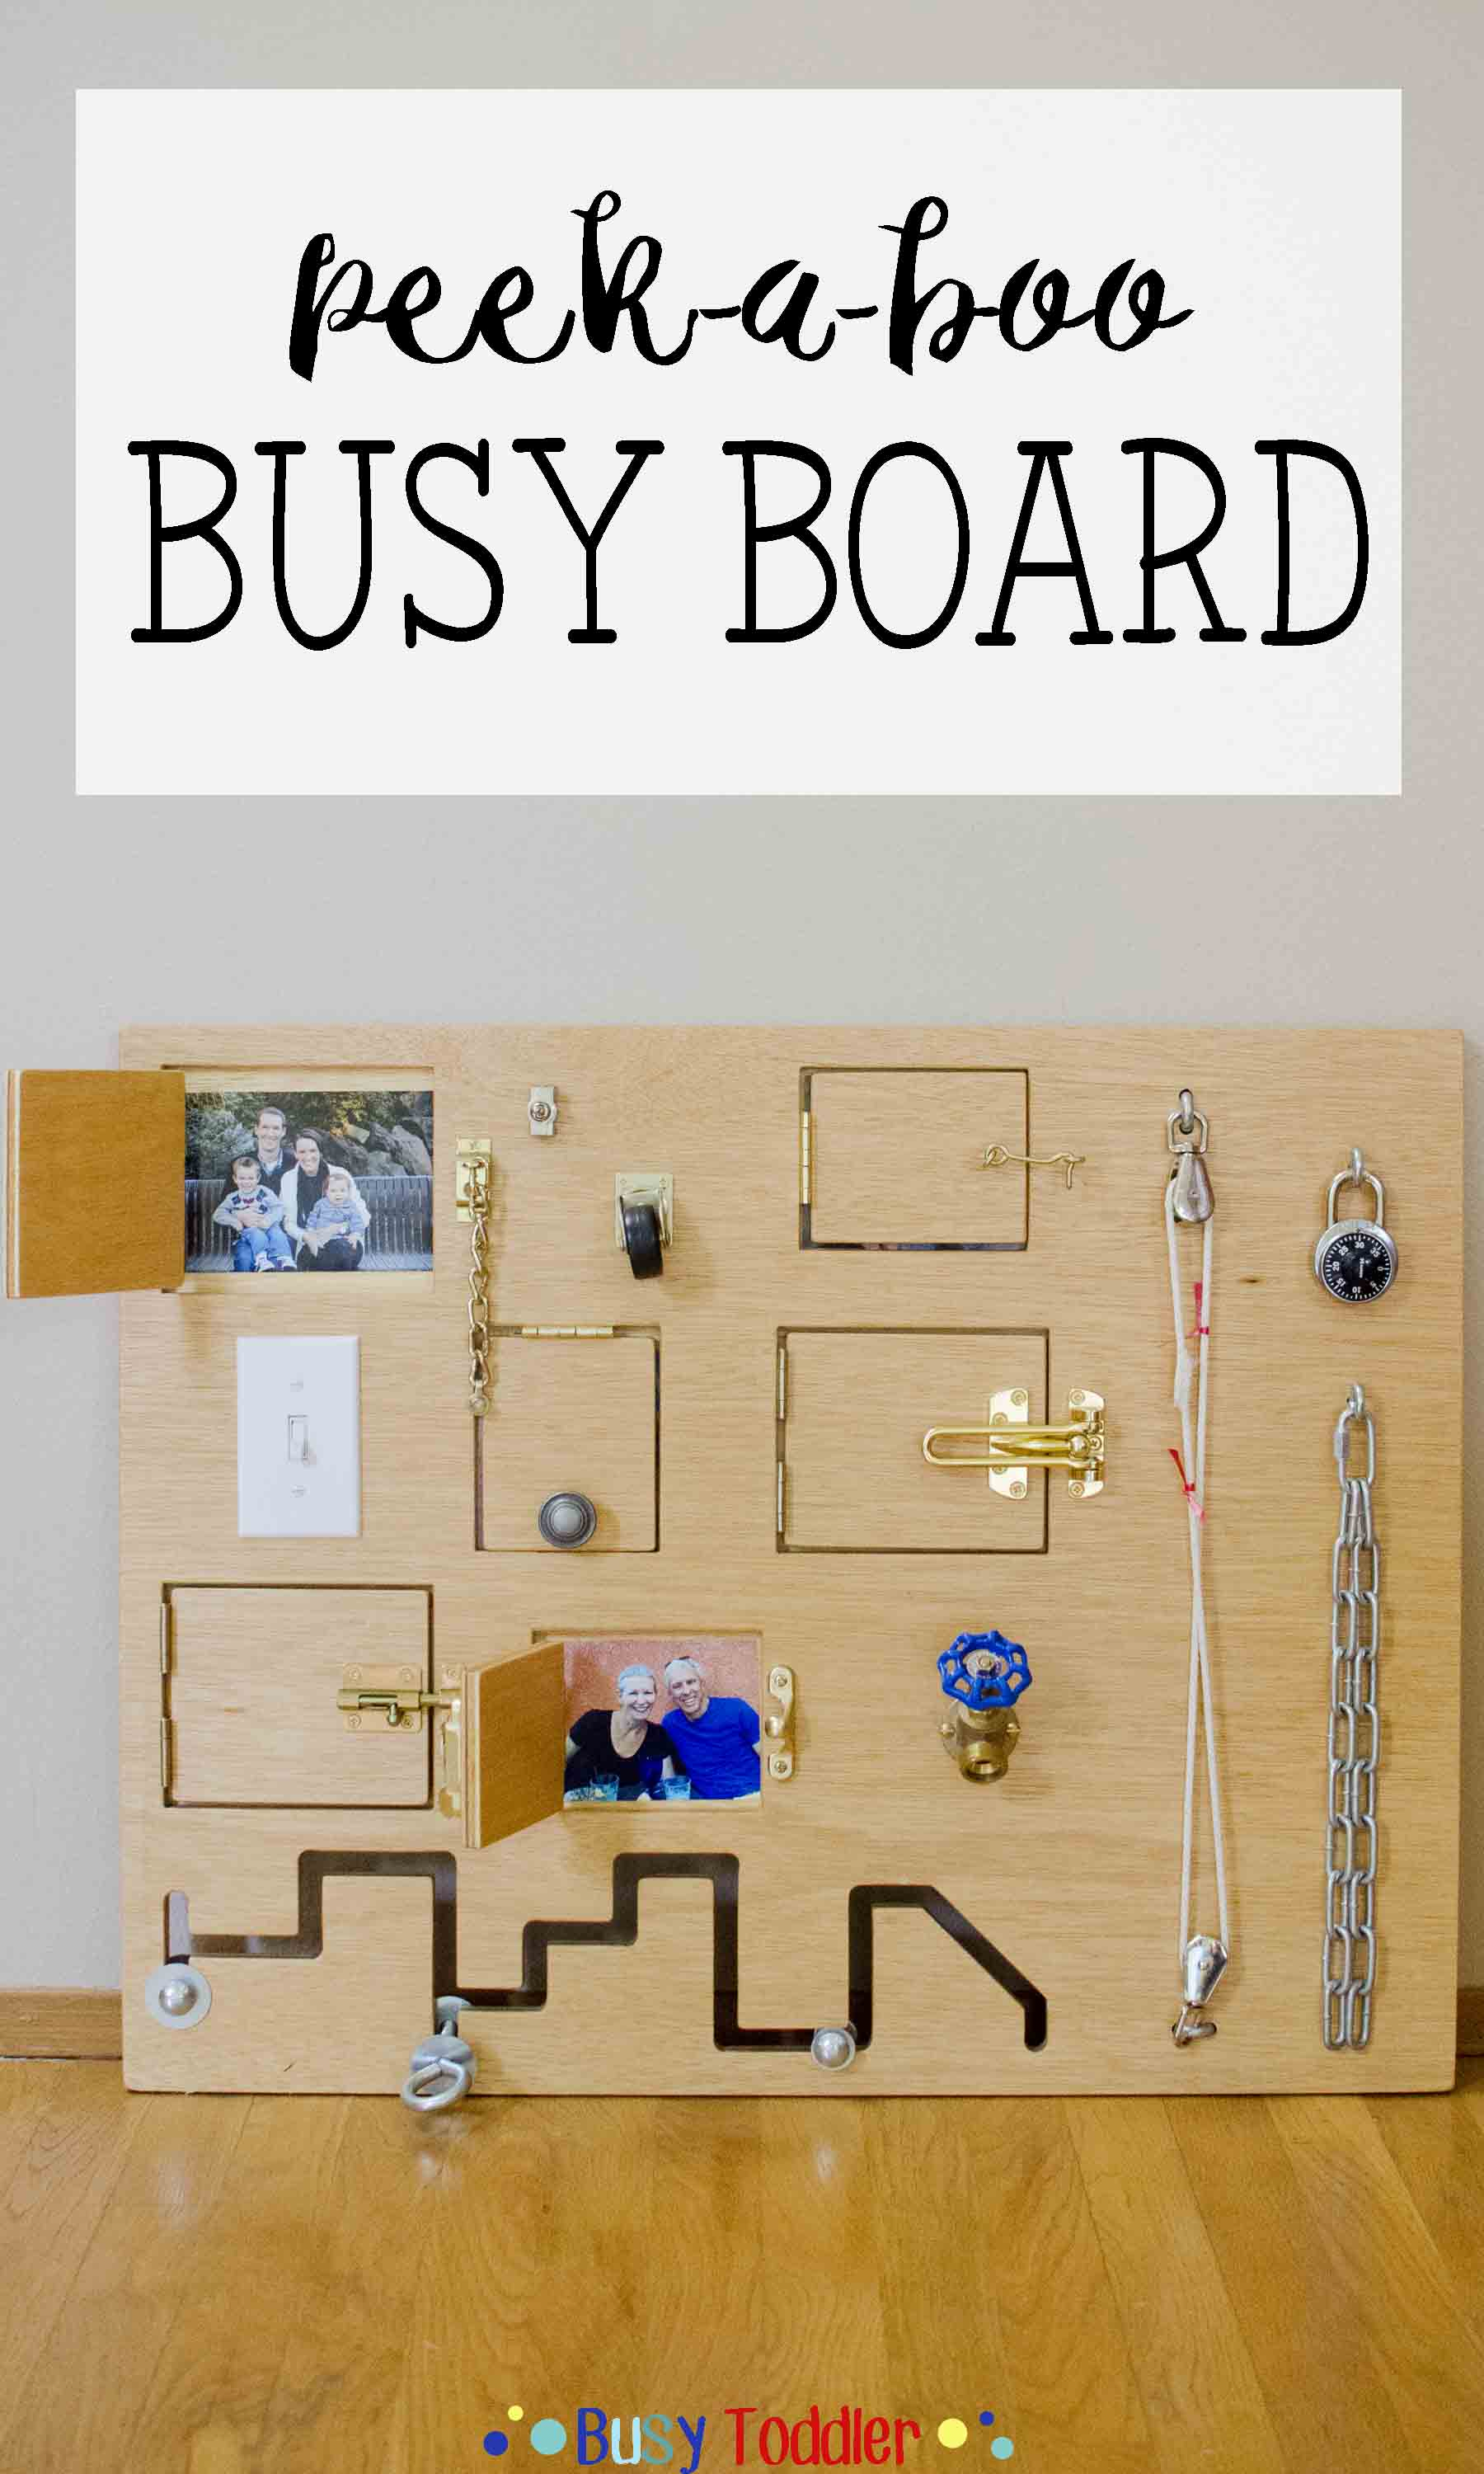 TODDLER BUSY BOARD: A fantastic DIY toy perfect for babies, toddlers, and preschoolers. A great indoor activity that works on fine motor skills.